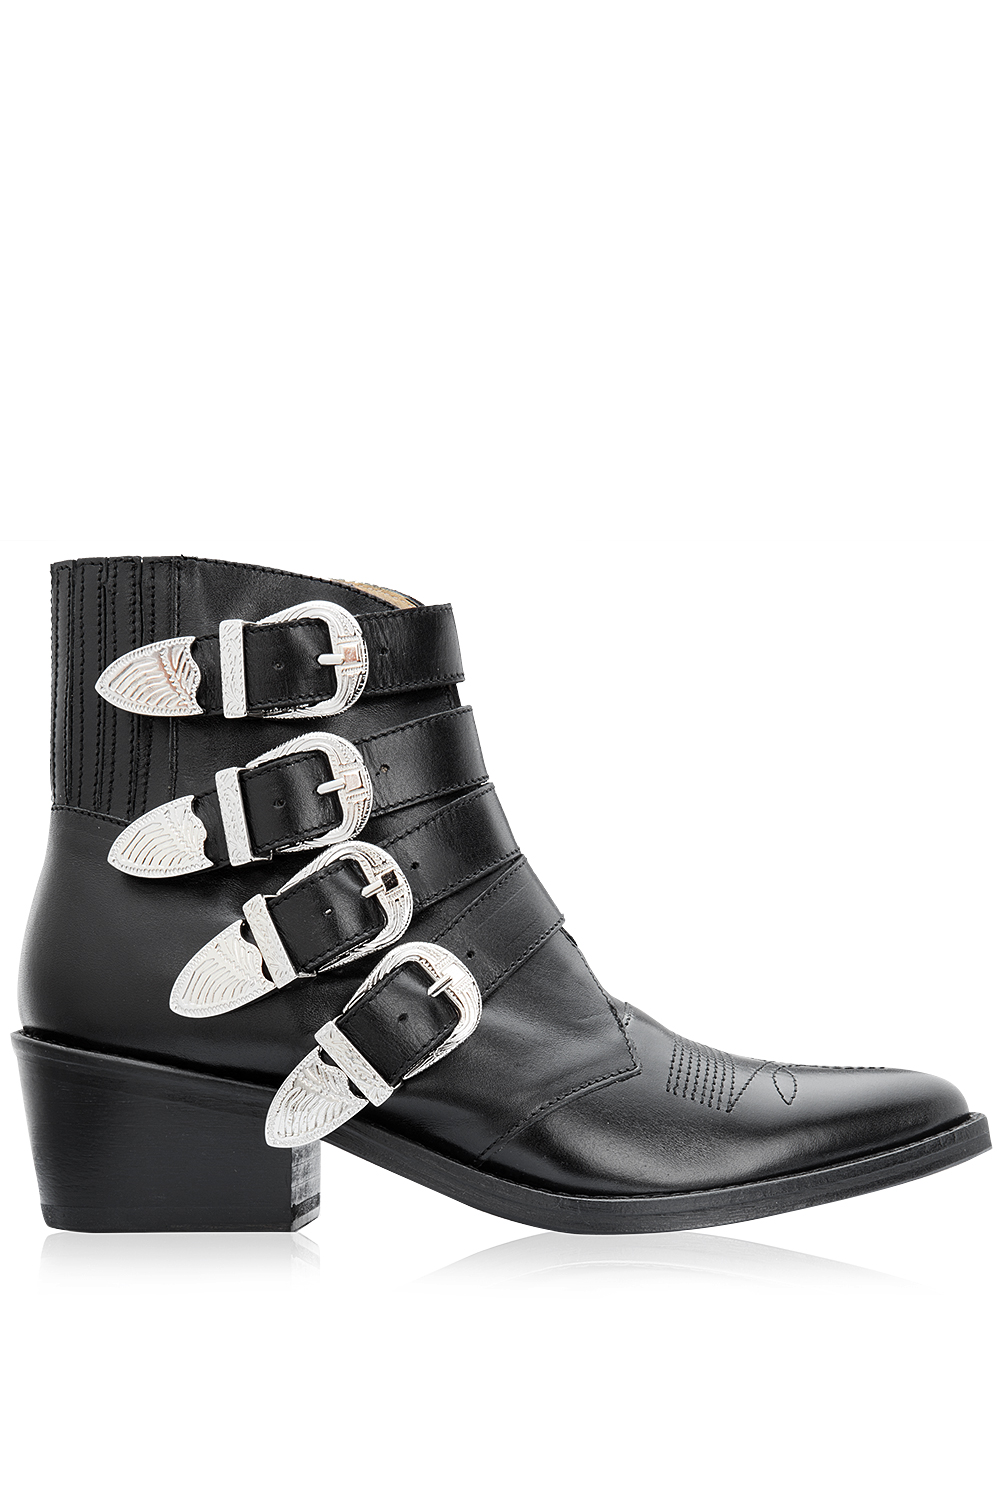 Buckle Ankle Boots 8SoHwOJx